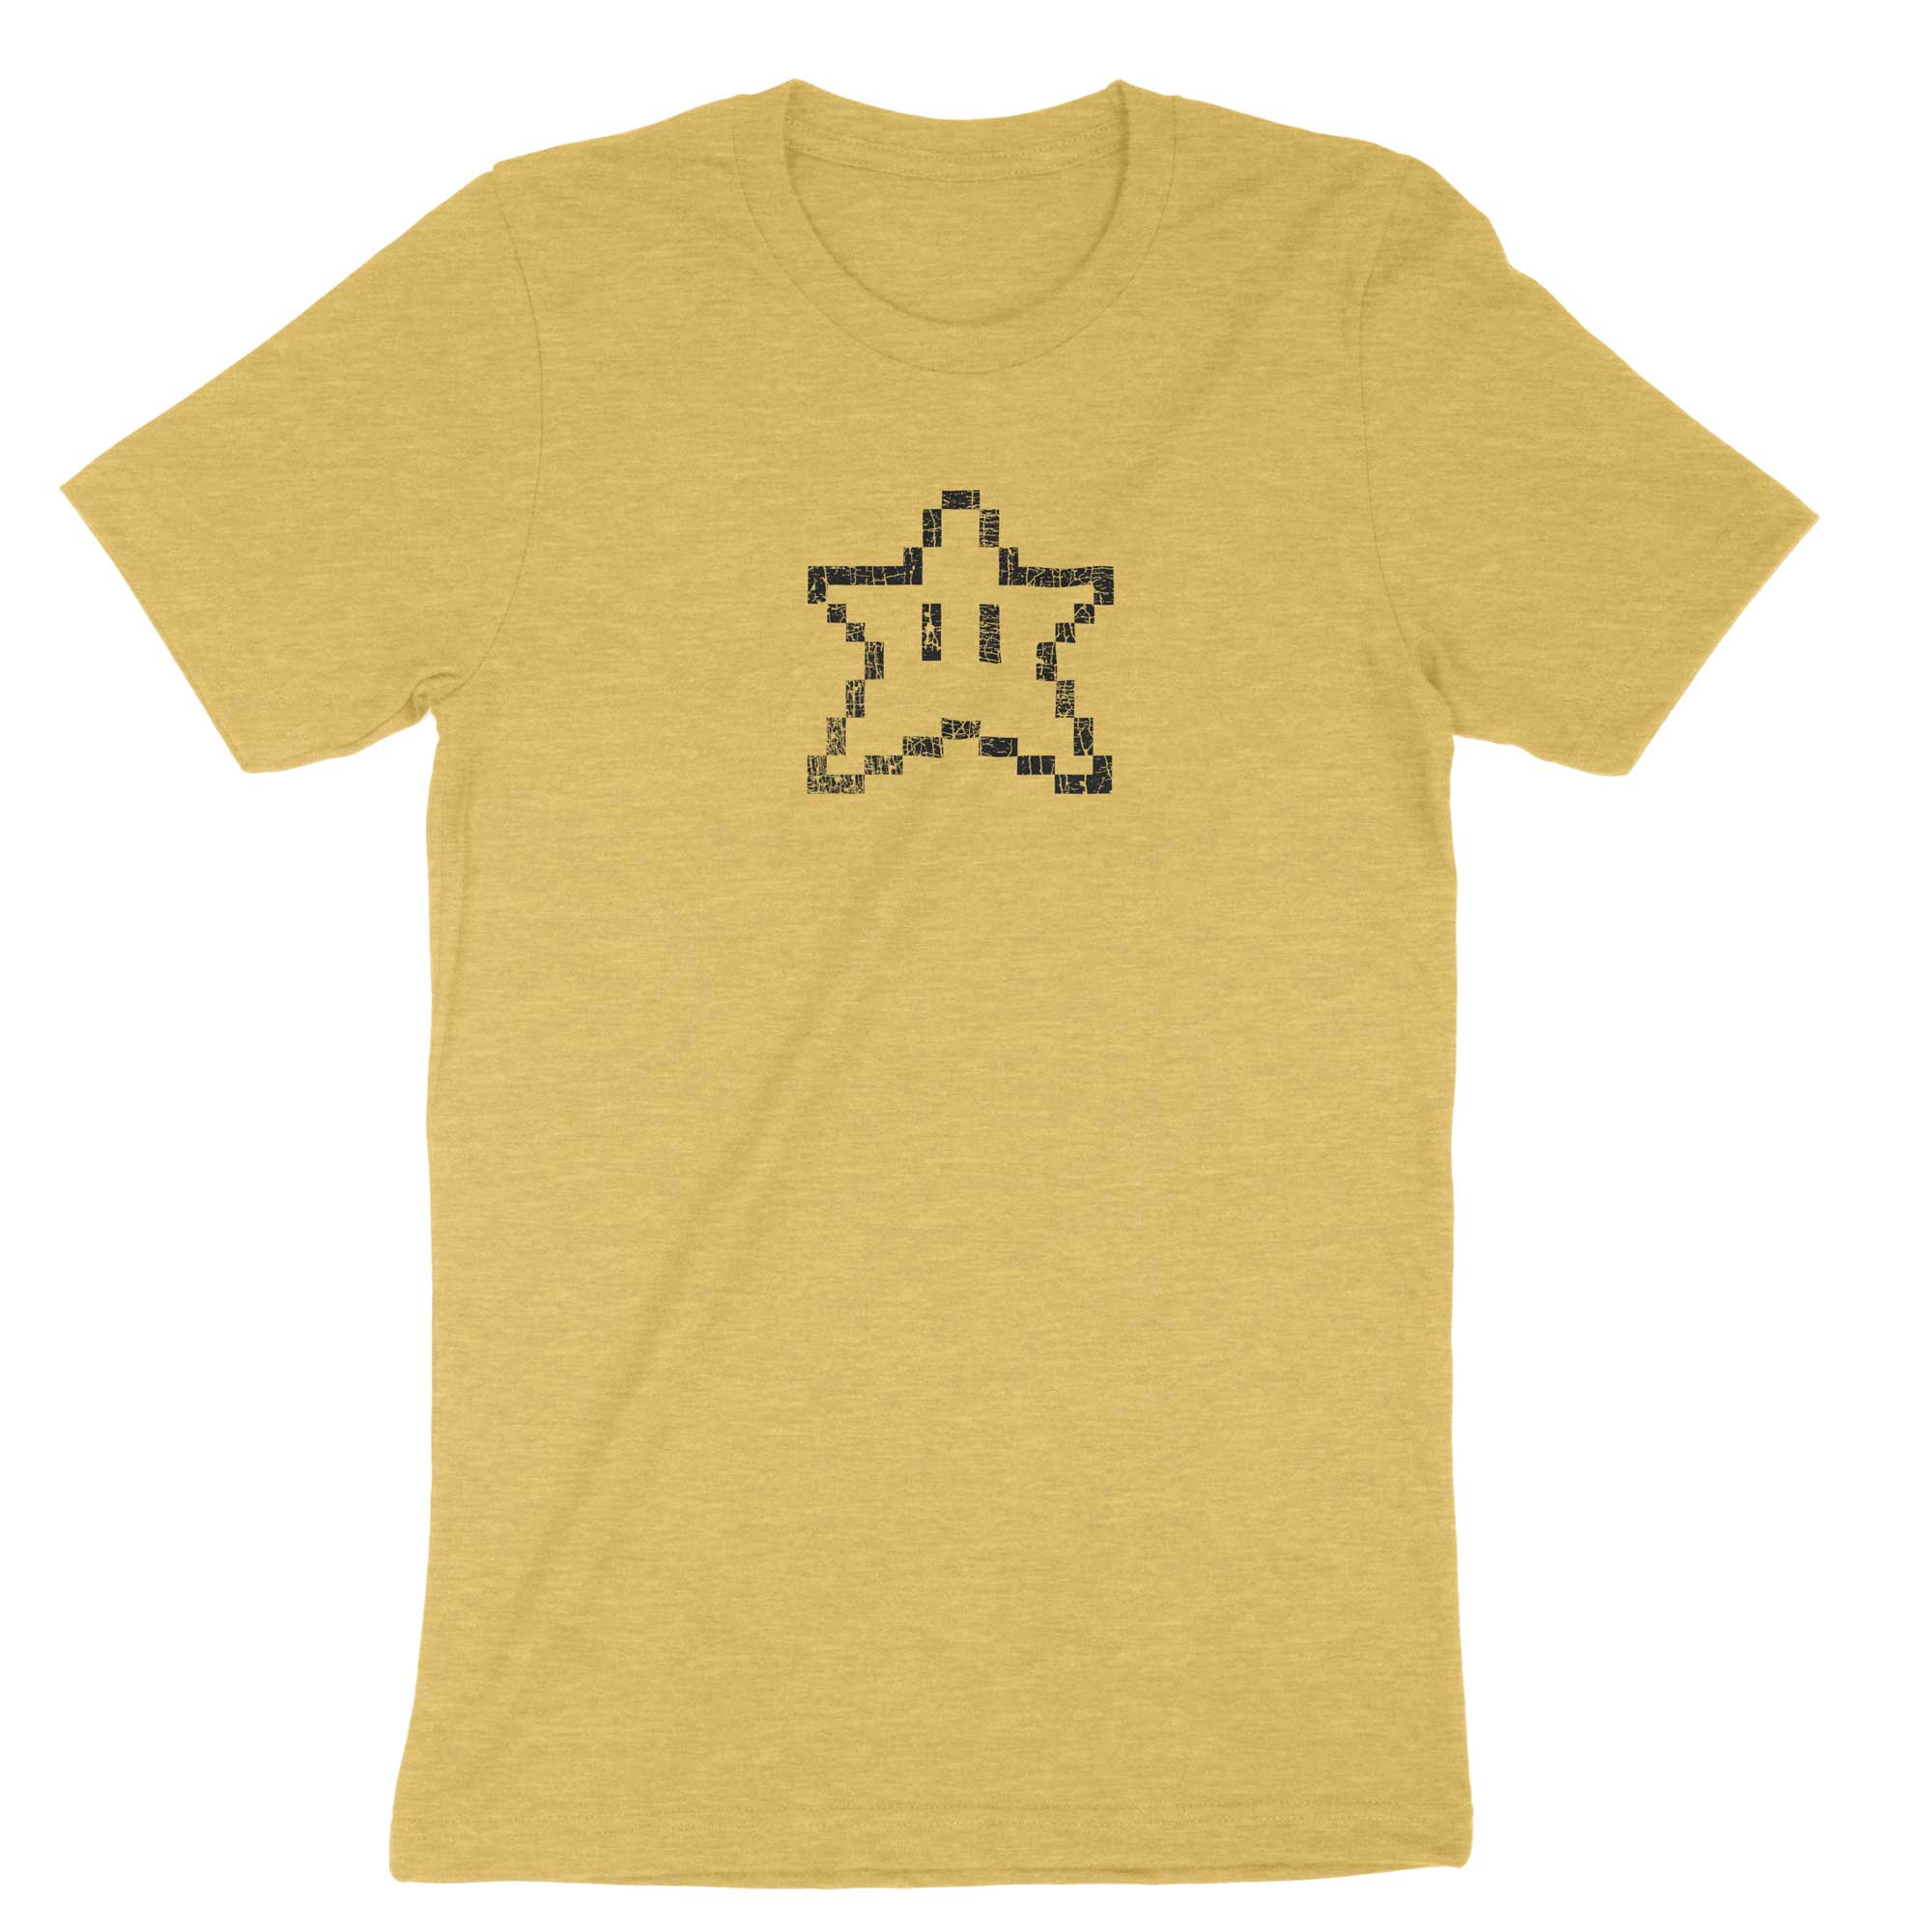 Invincible Vintage Shirt-T-Shirts-Shirtasaurus-Premium-XS-Heather Yellow Gold-Shirtasaurus